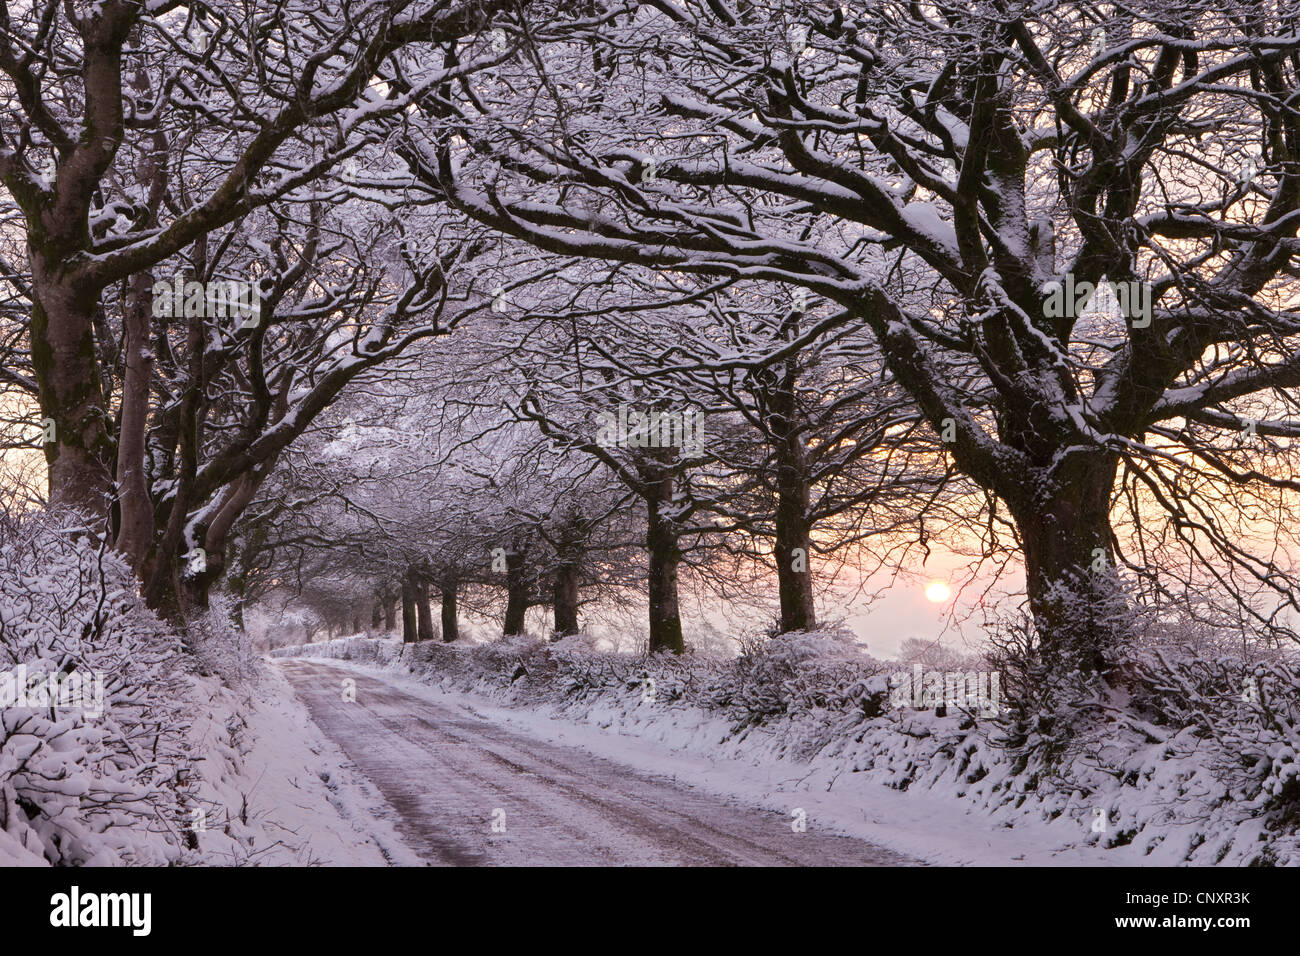 Tree lined country lane laden with snow, Exmoor, Somerset, England. Winter (January) 2012. - Stock Image